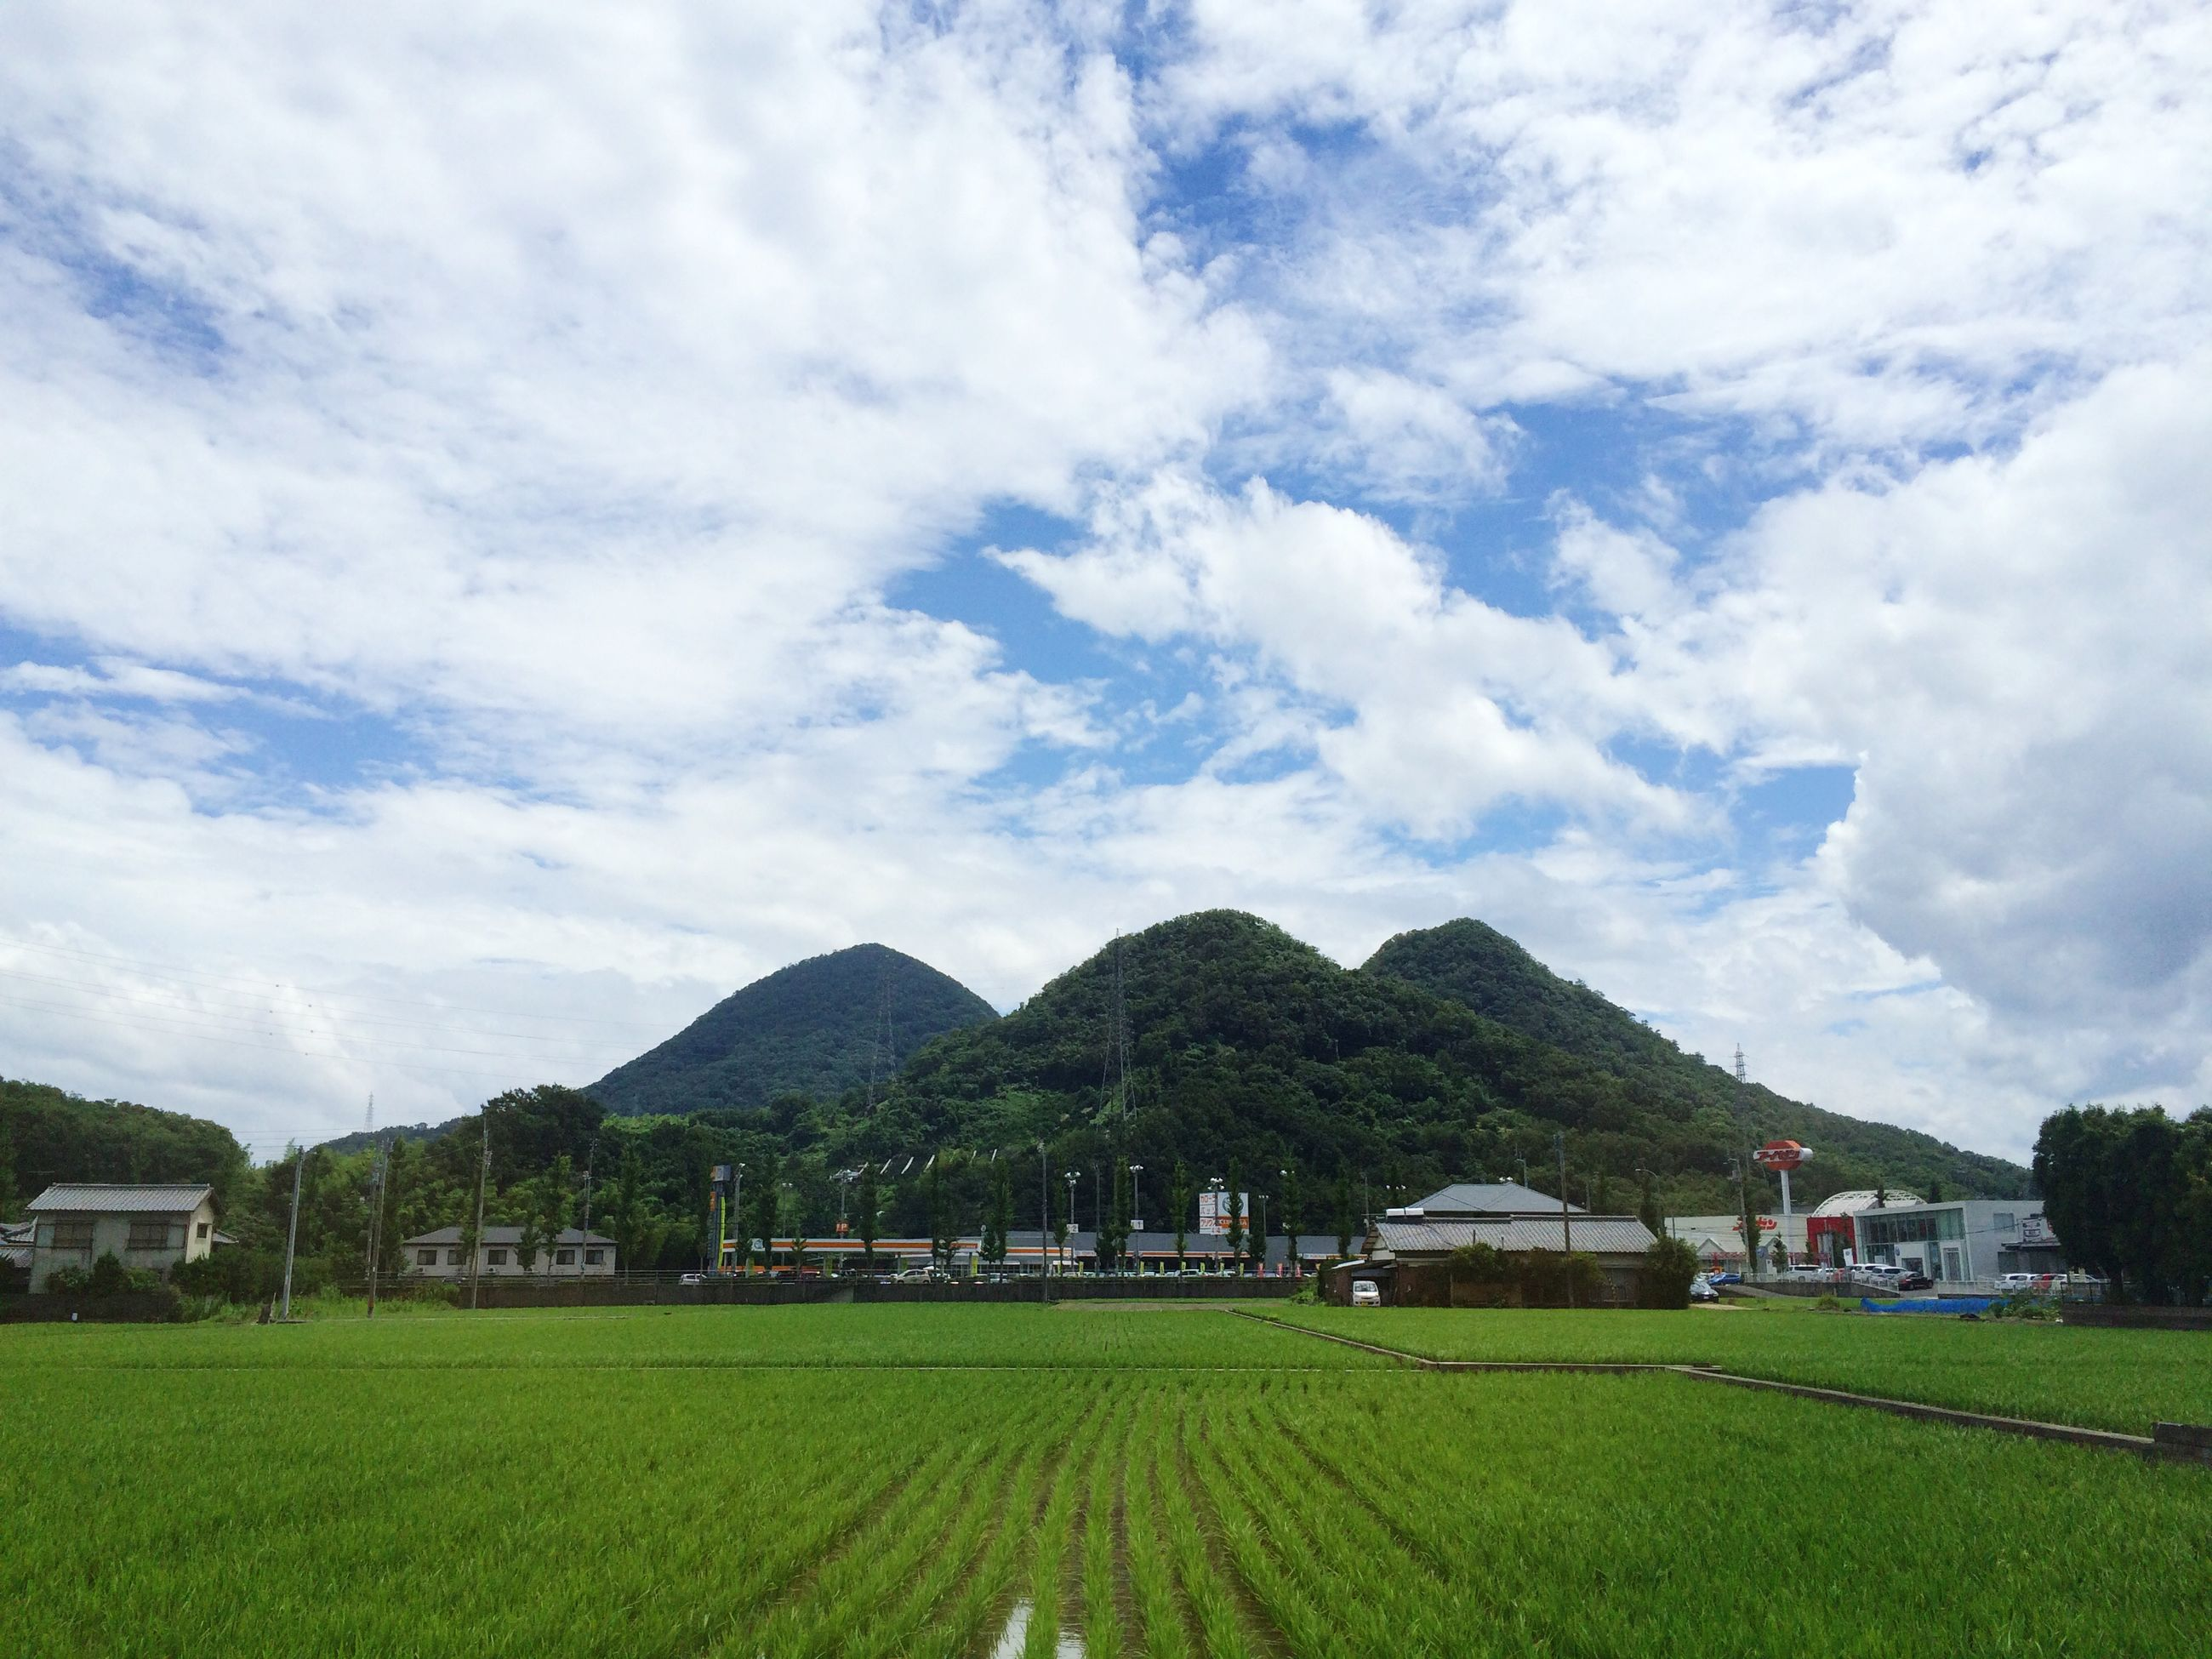 sky, landscape, grass, agriculture, field, building exterior, rural scene, mountain, architecture, cloud - sky, tranquil scene, built structure, farm, cloud, house, scenics, village, tranquility, beauty in nature, green color